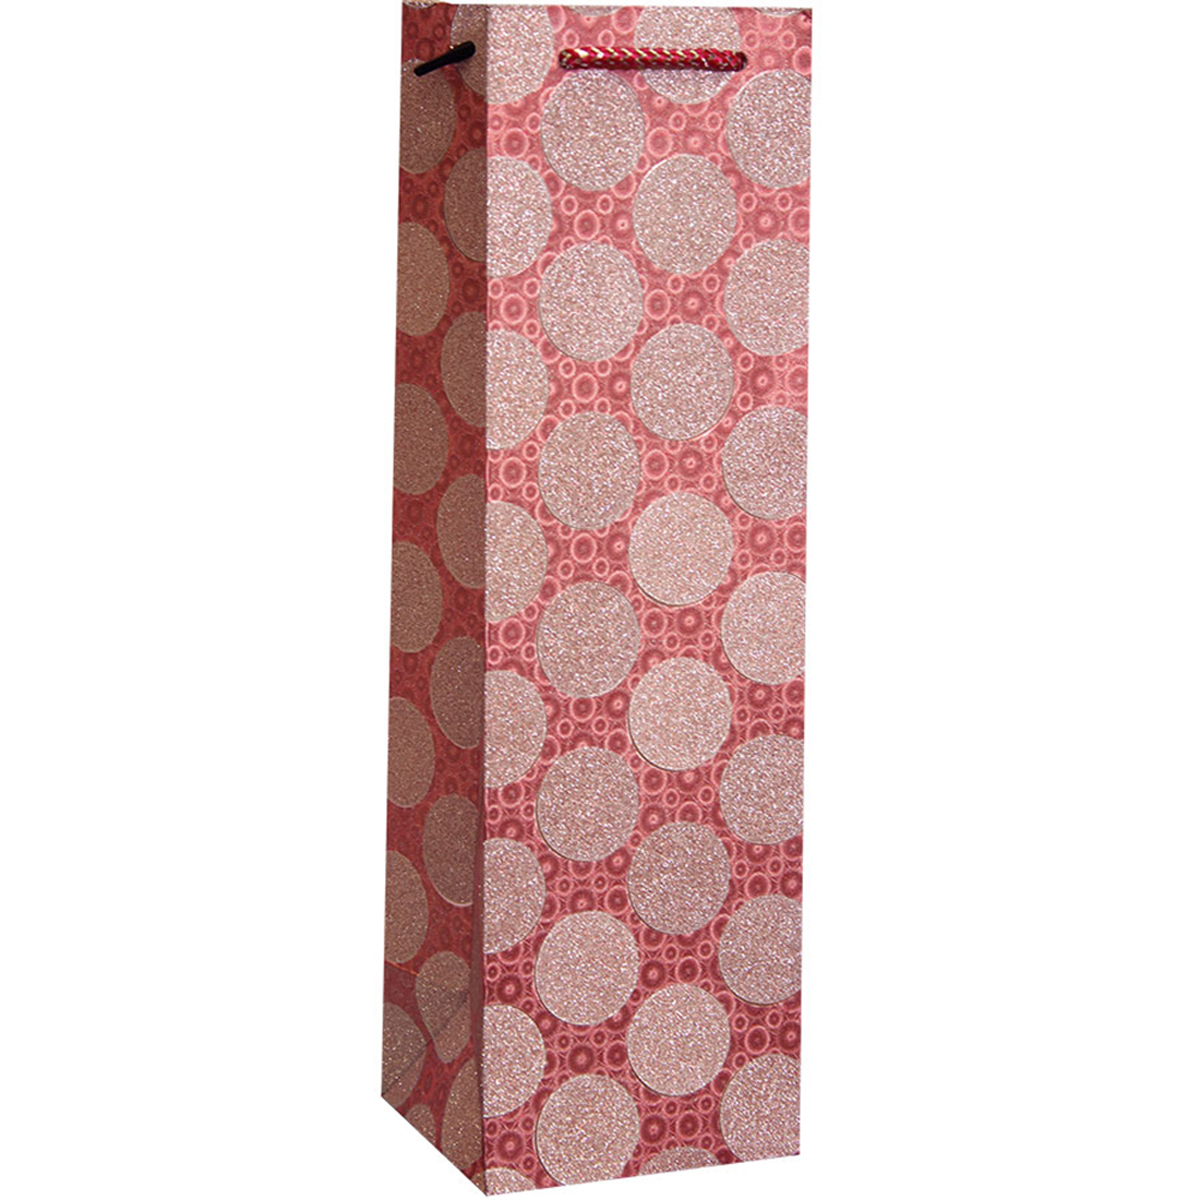 DG1 Pink Circles - Decorative Glitter Printed Paper Bottle Bags